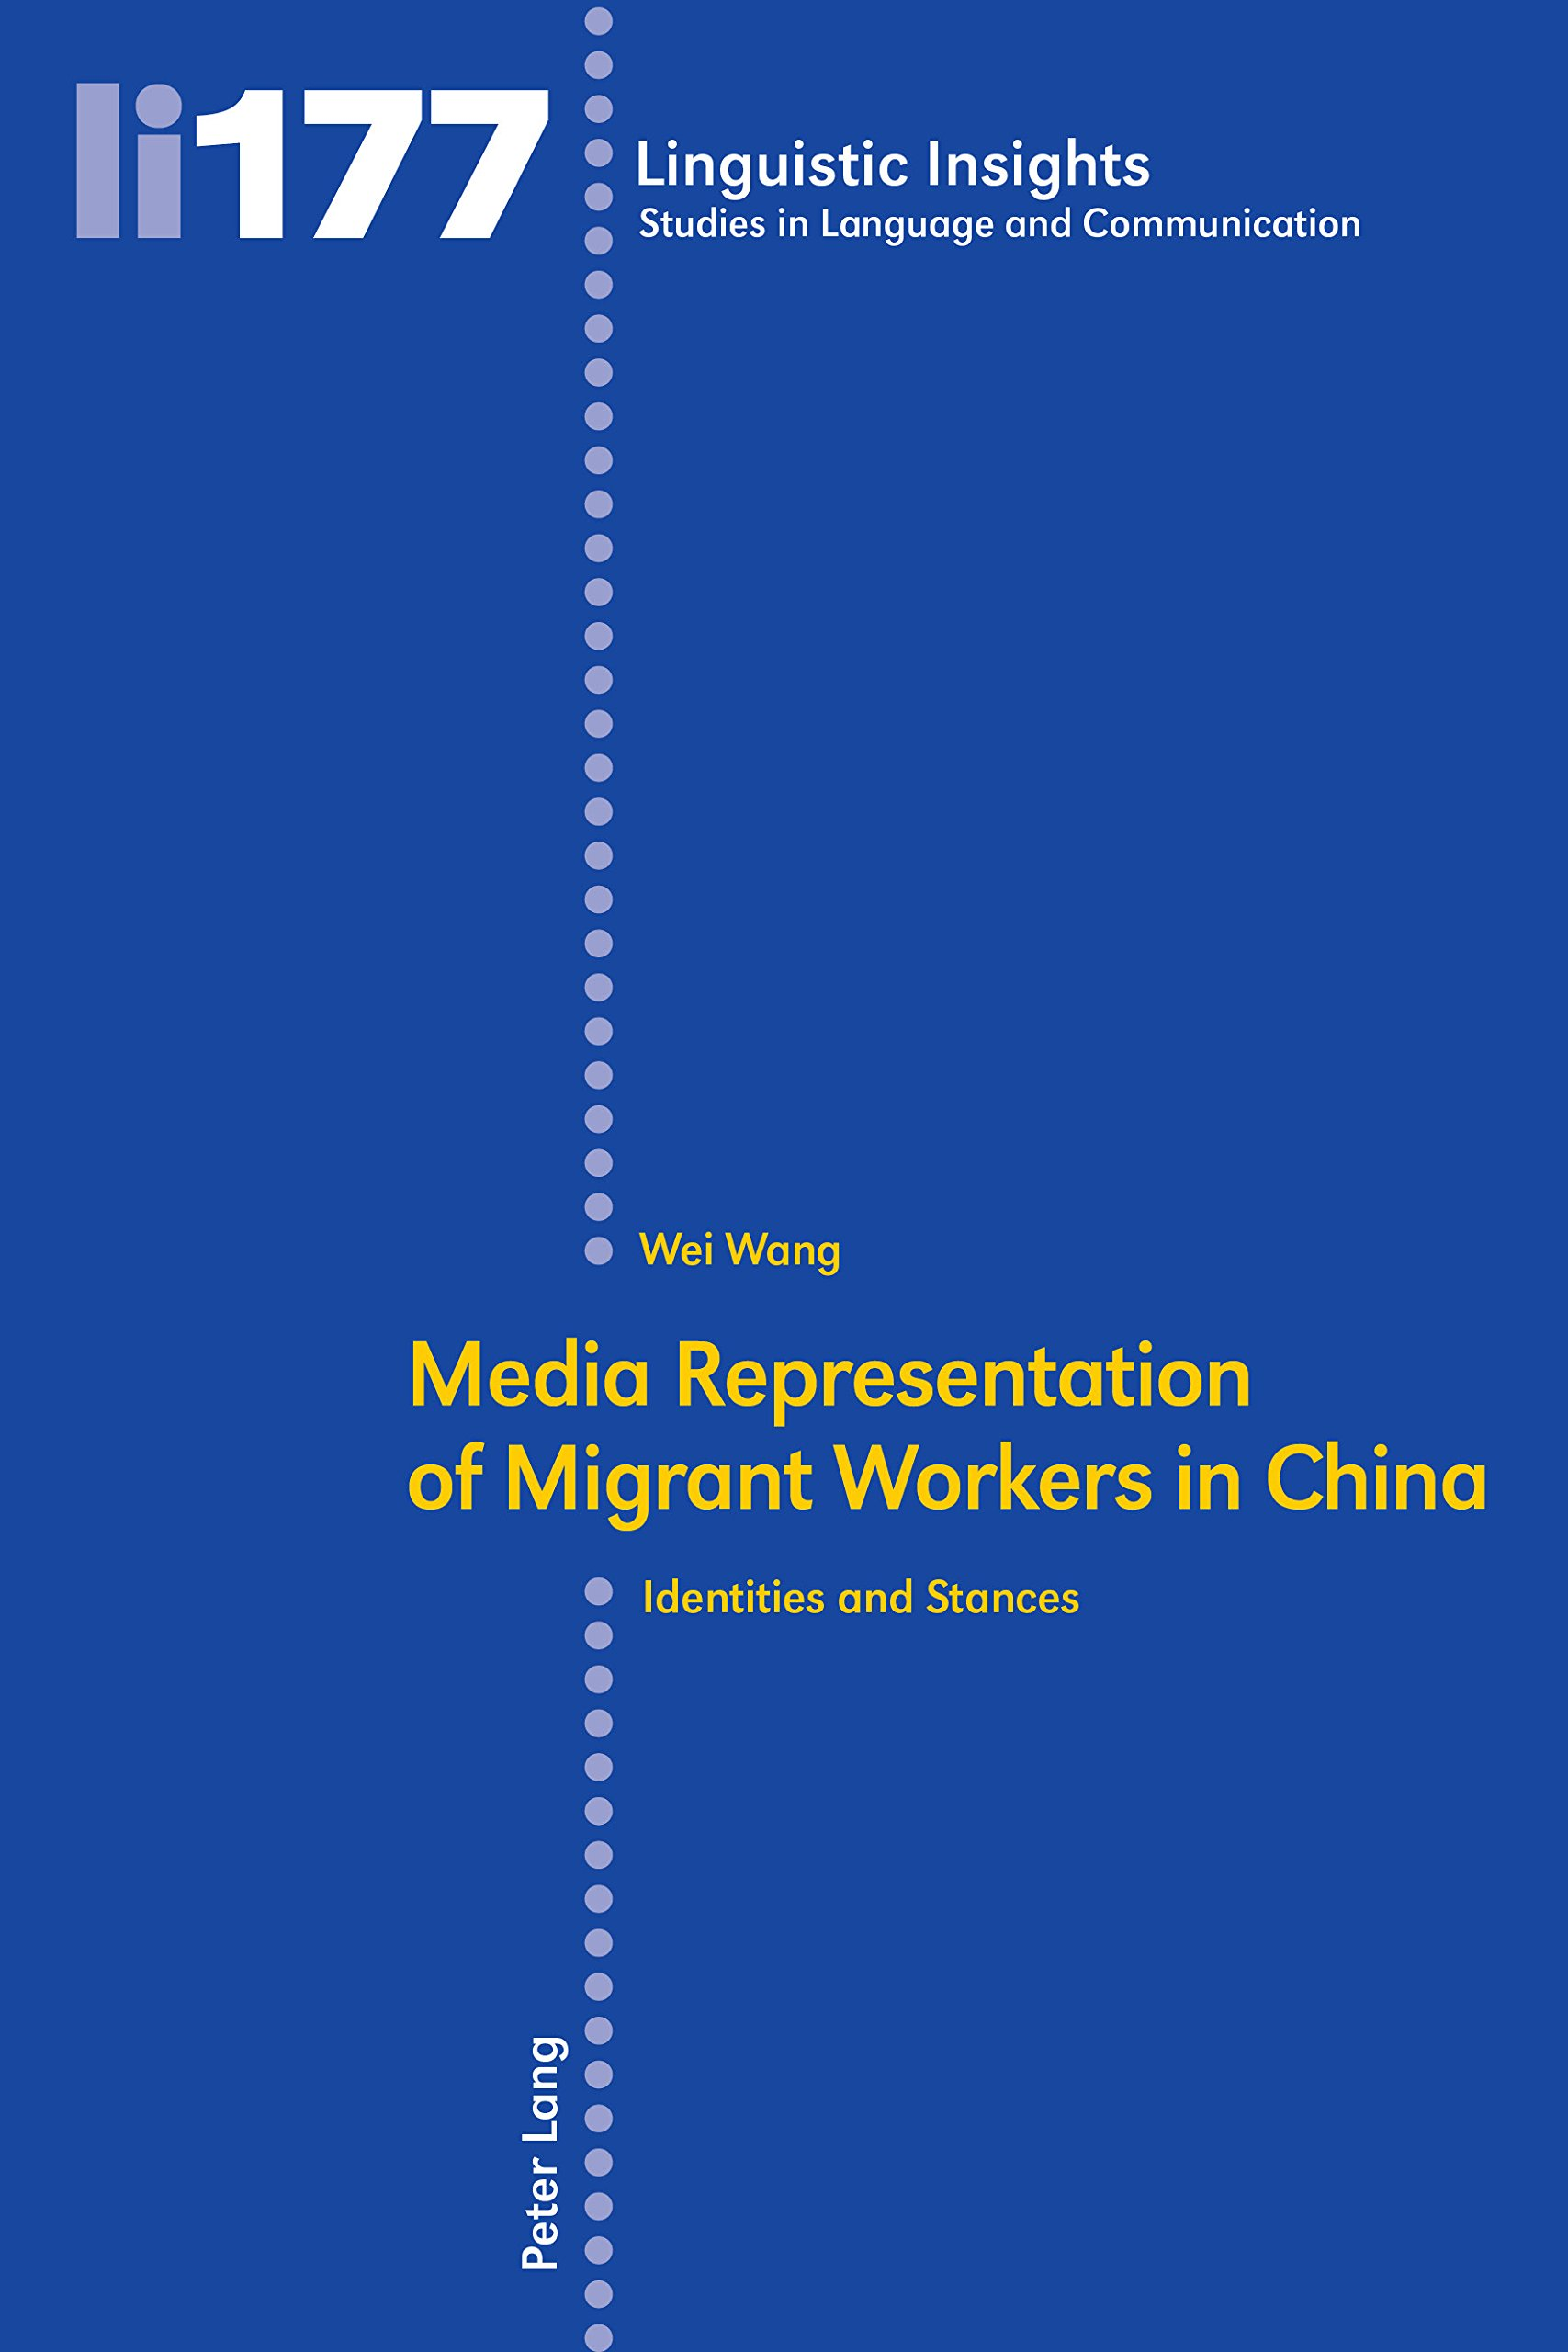 Media representation of migrant workers in China: Identities and stances (Linguistic Insights) by Peter Lang AG, Internationaler Verlag der Wissenschaften